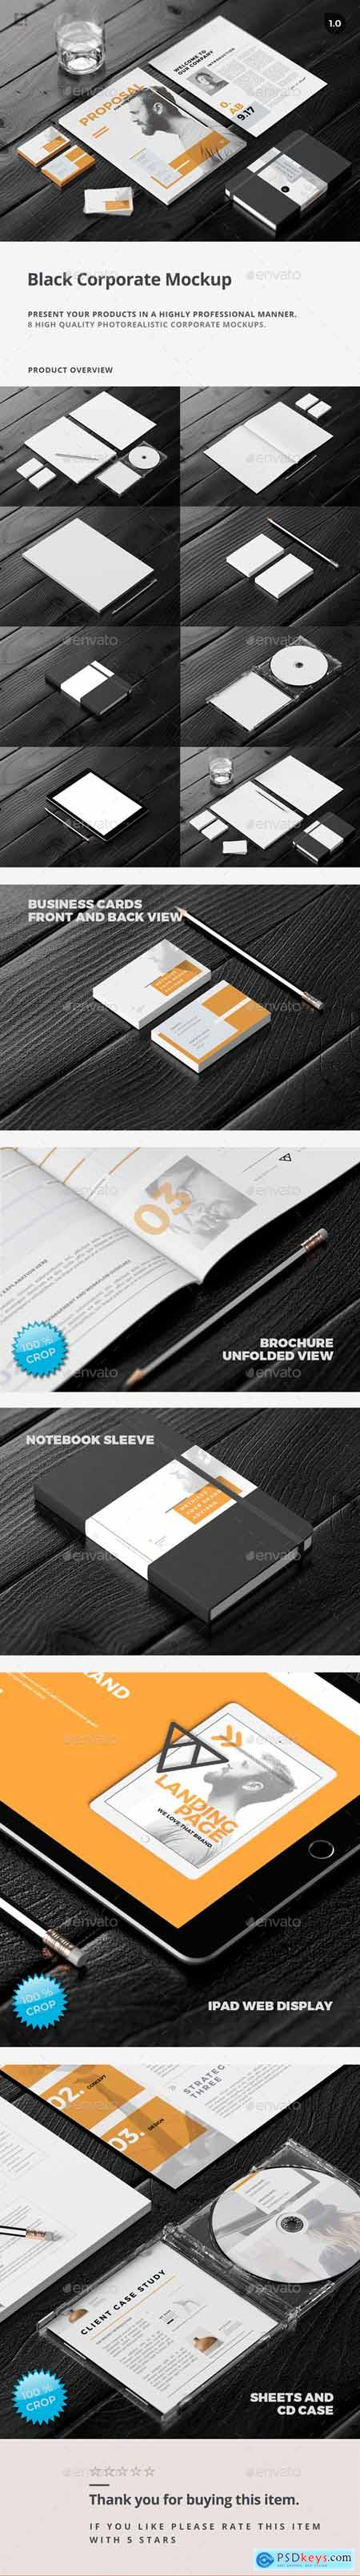 branding » Free Download Photoshop Vector Stock image Via